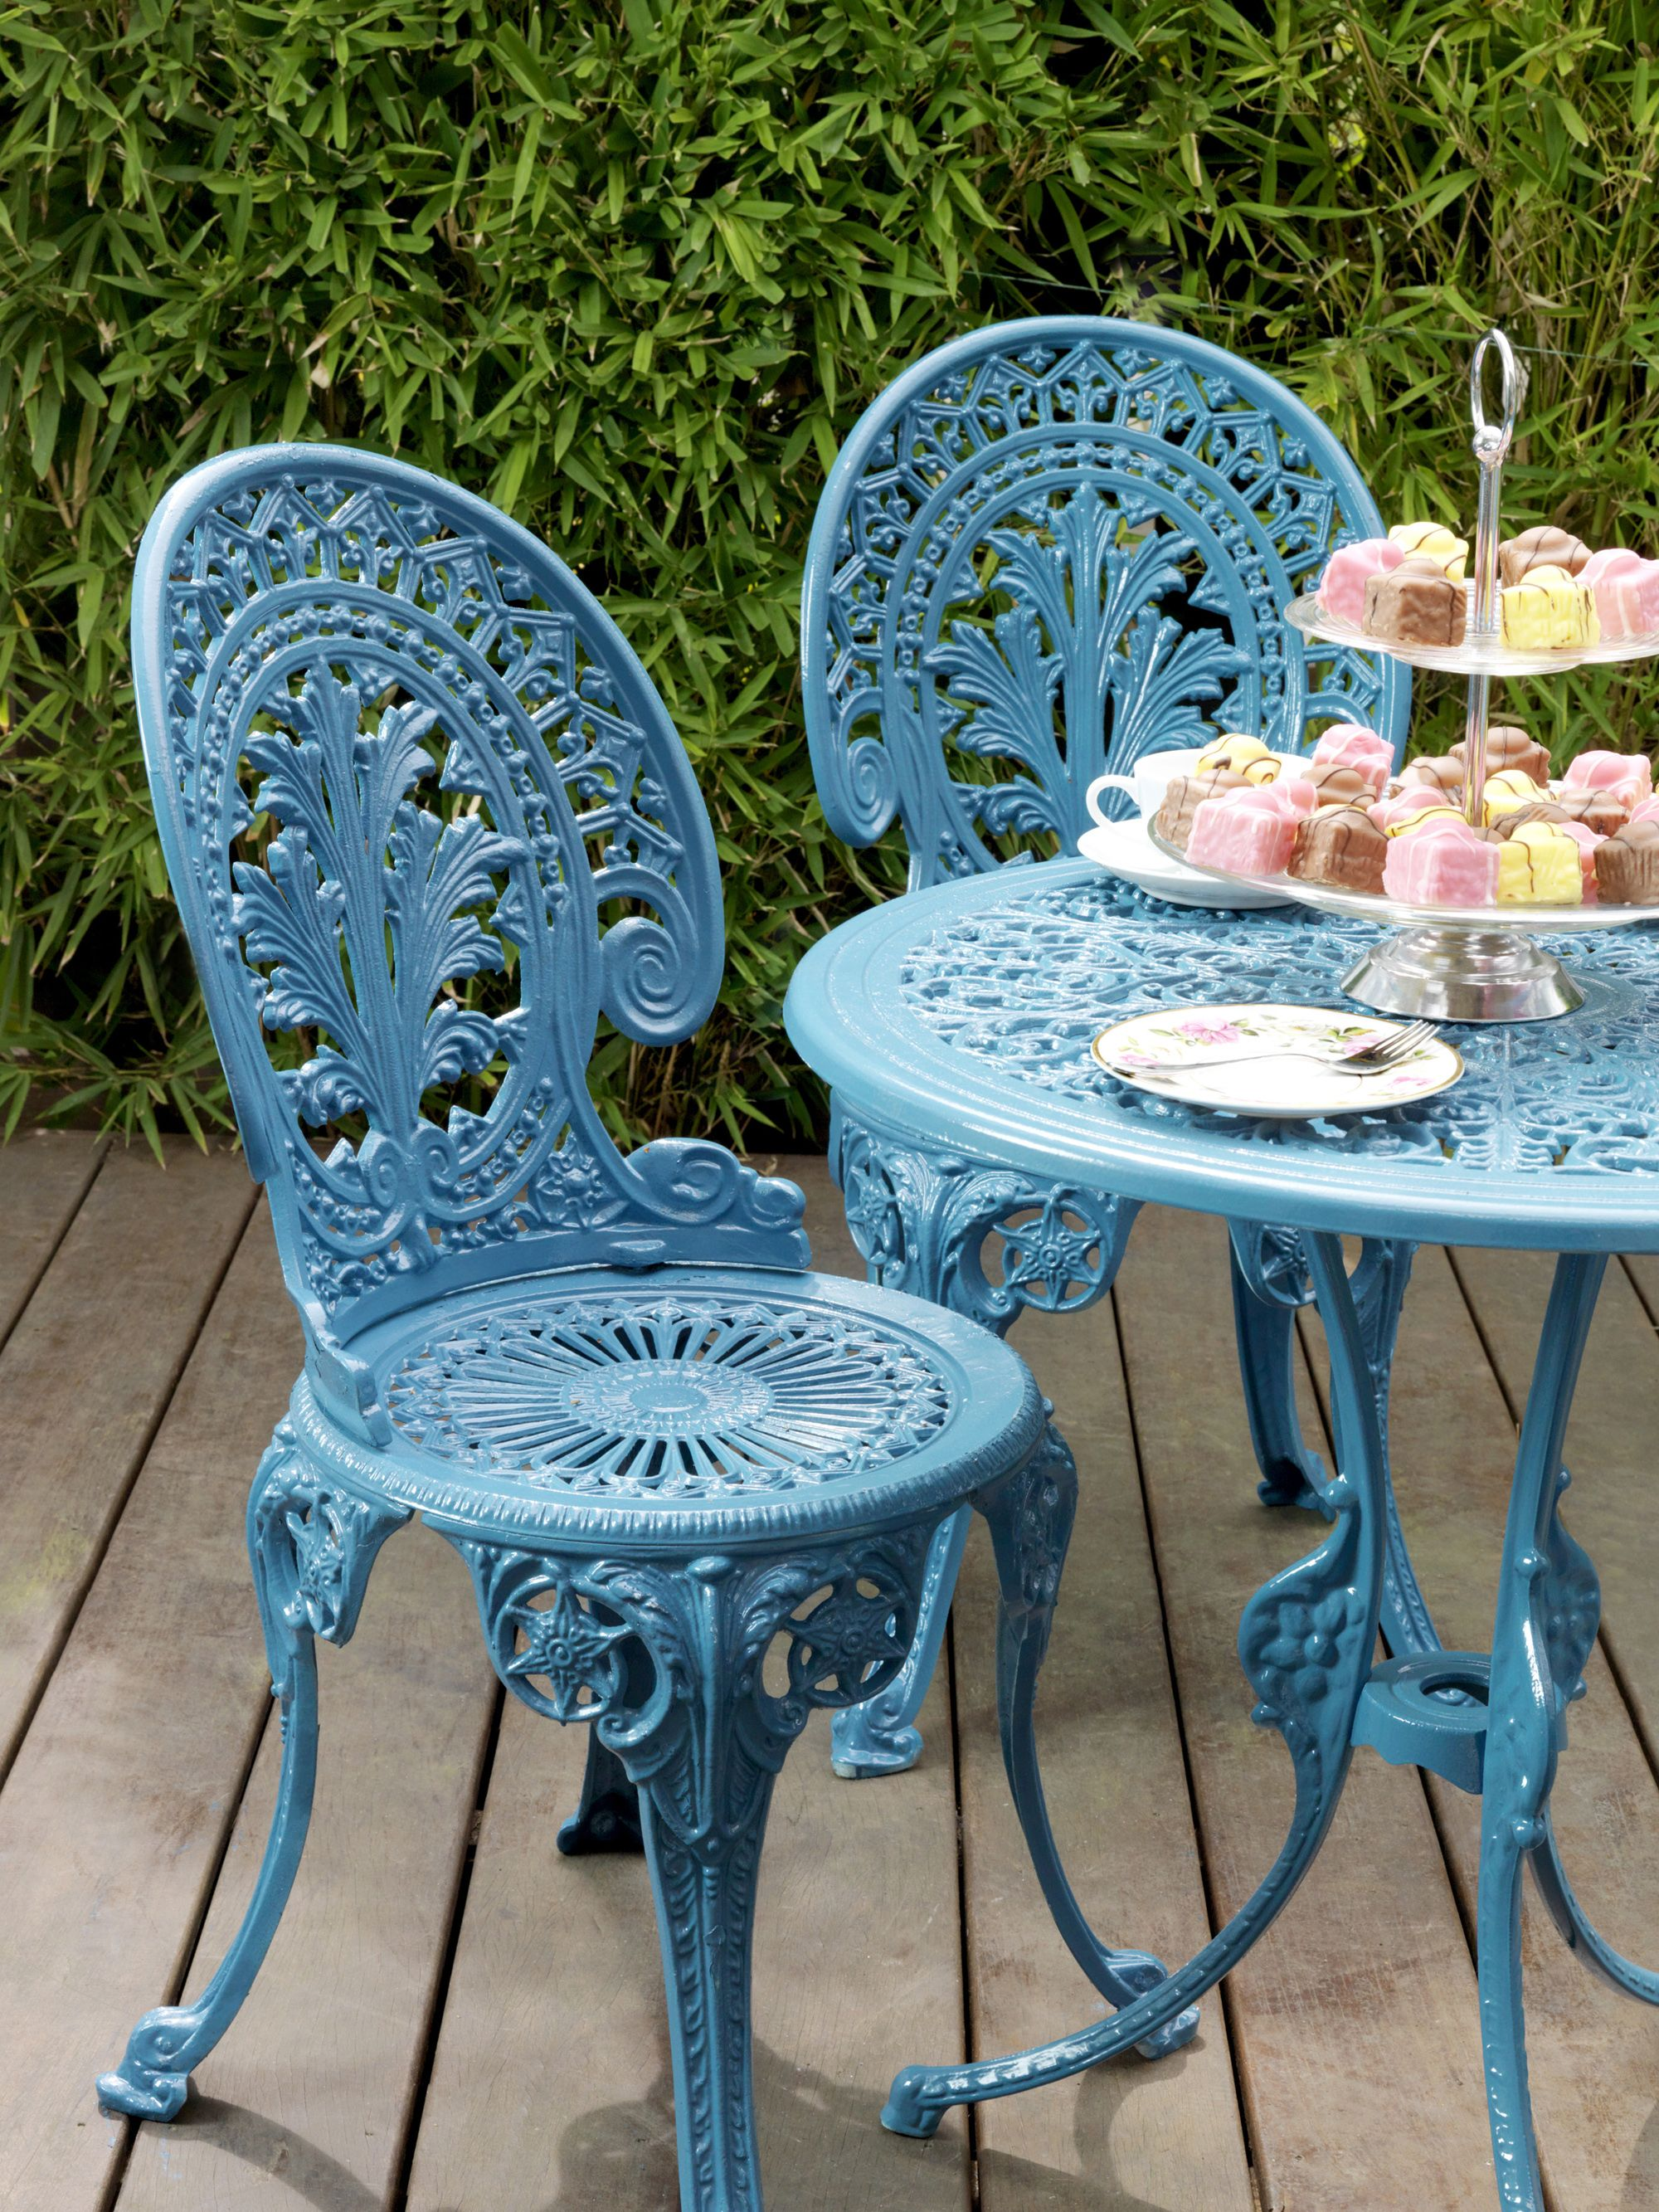 Garden Furniture Colour Ideas outdoor metal chairs | the next step for husband | pinterest